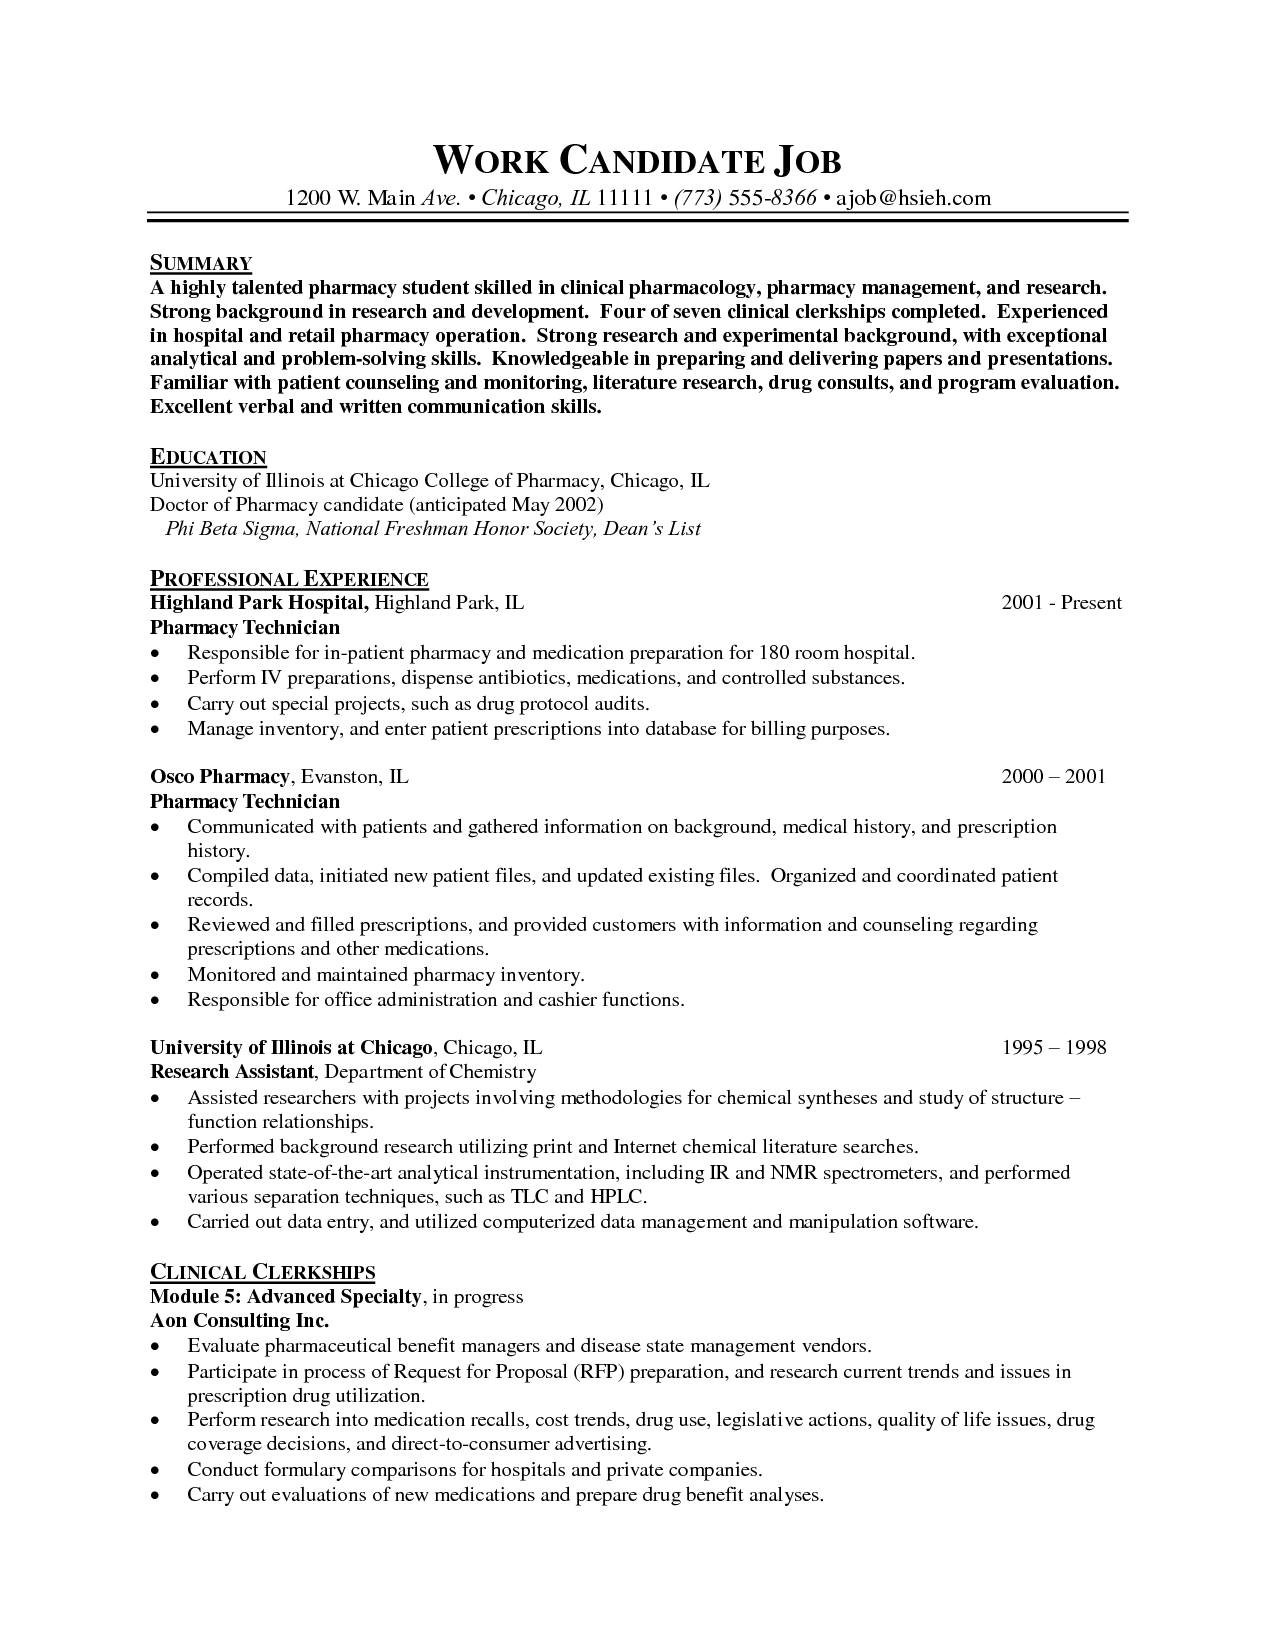 Resume Format Template Professional Resume Cover Letter Sample  Get Instant Risk Free